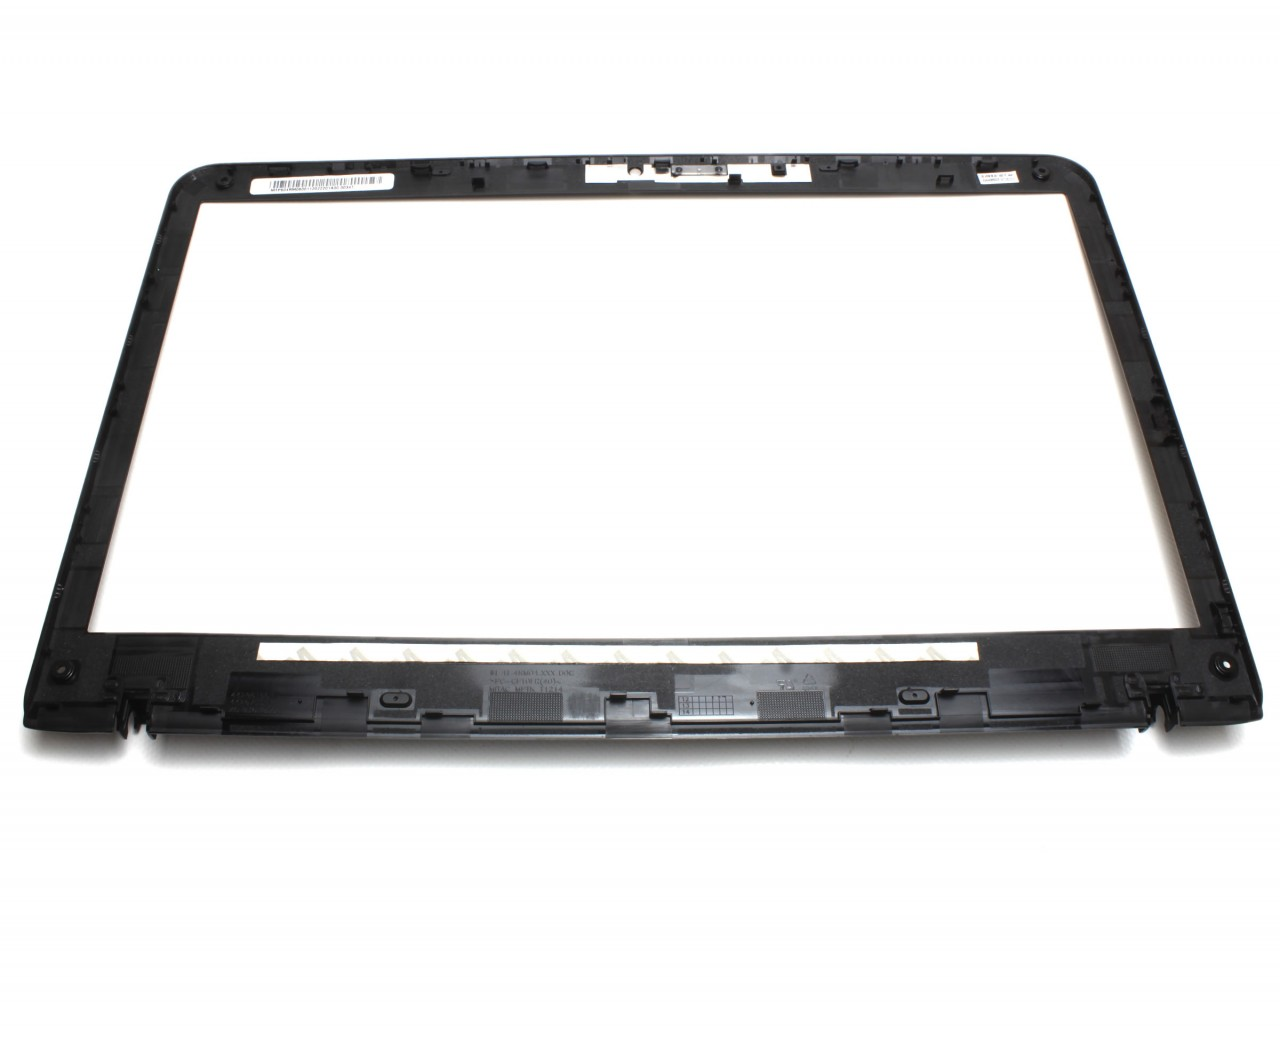 Rama Display Sony VAIO SVE 151 Bezel Front Cover Neagra imagine powerlaptop.ro 2021